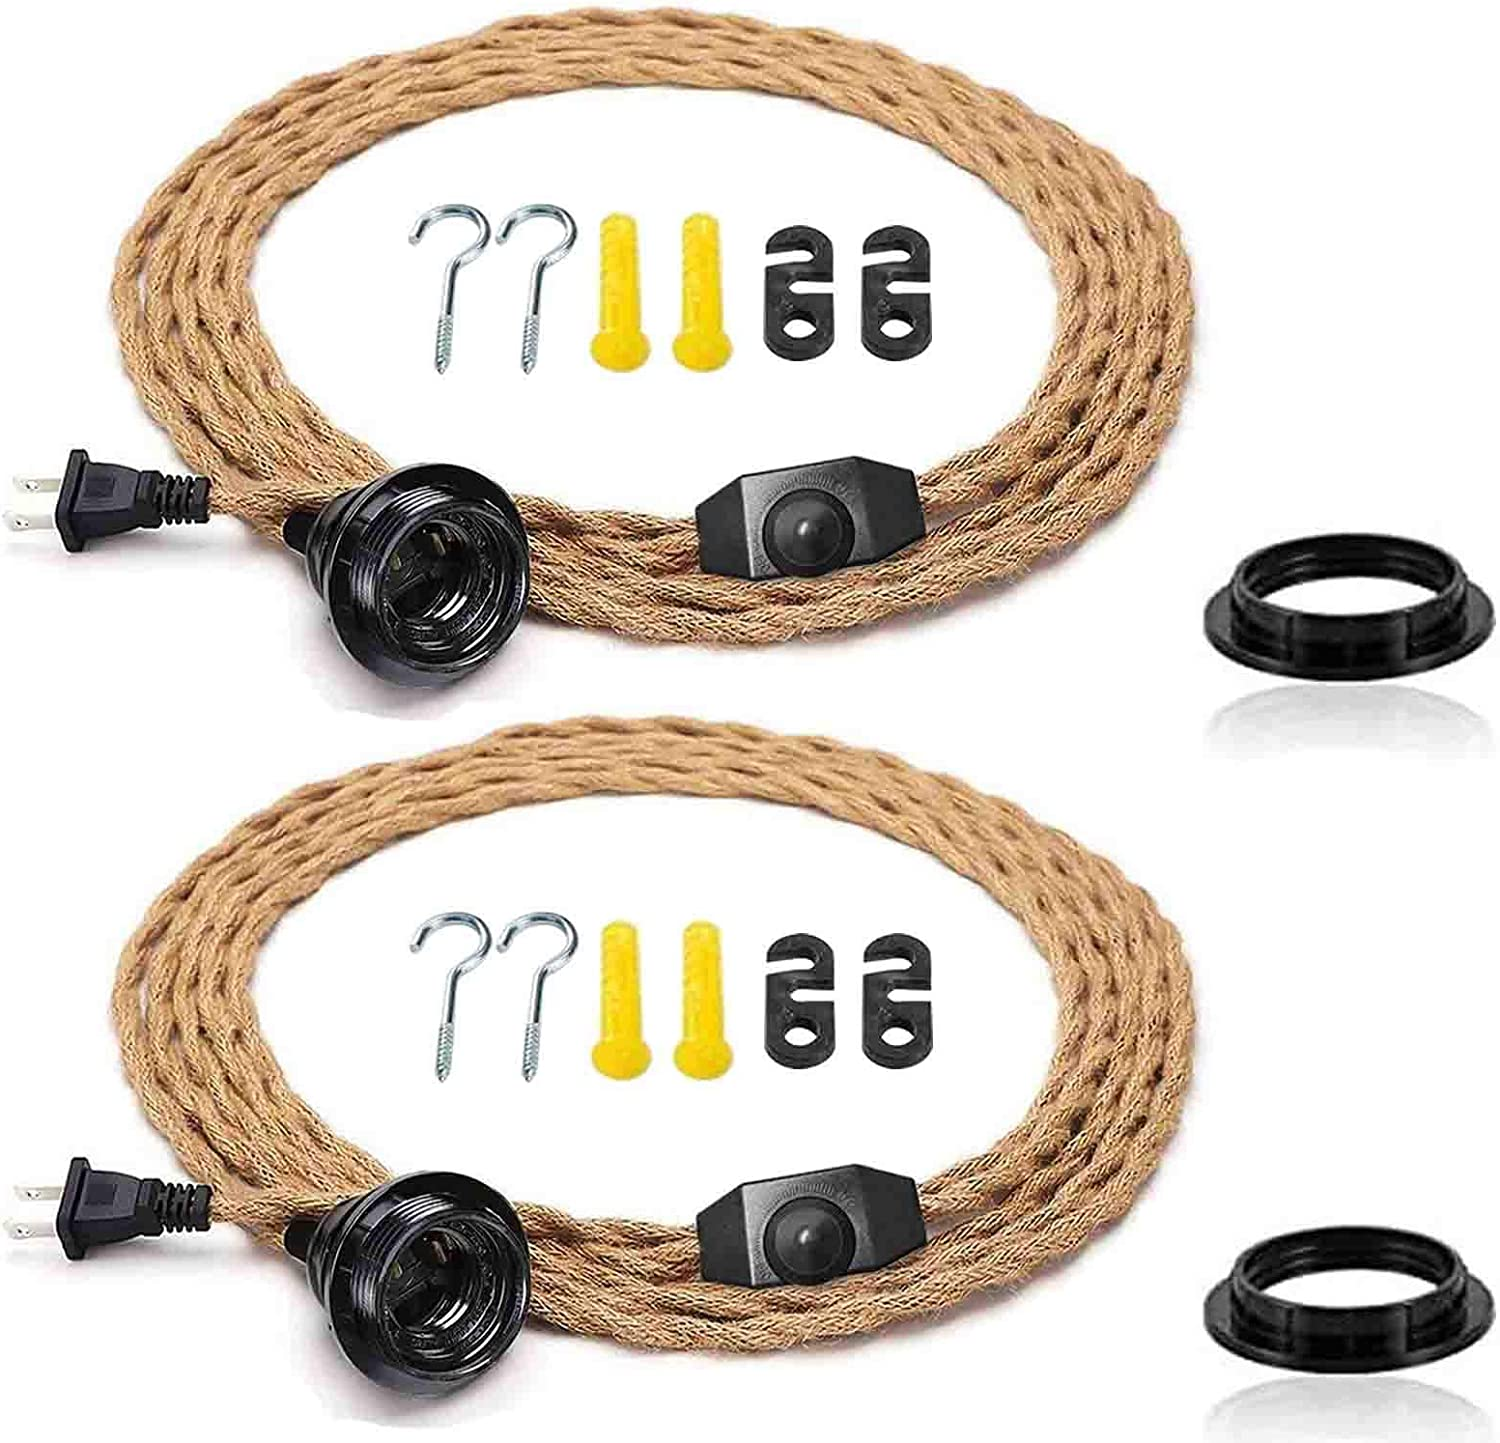 2Pack 15FT Pendant Light Cord Kit Dimmer He Switch Credence with Twisted ! Super beauty product restock quality top!